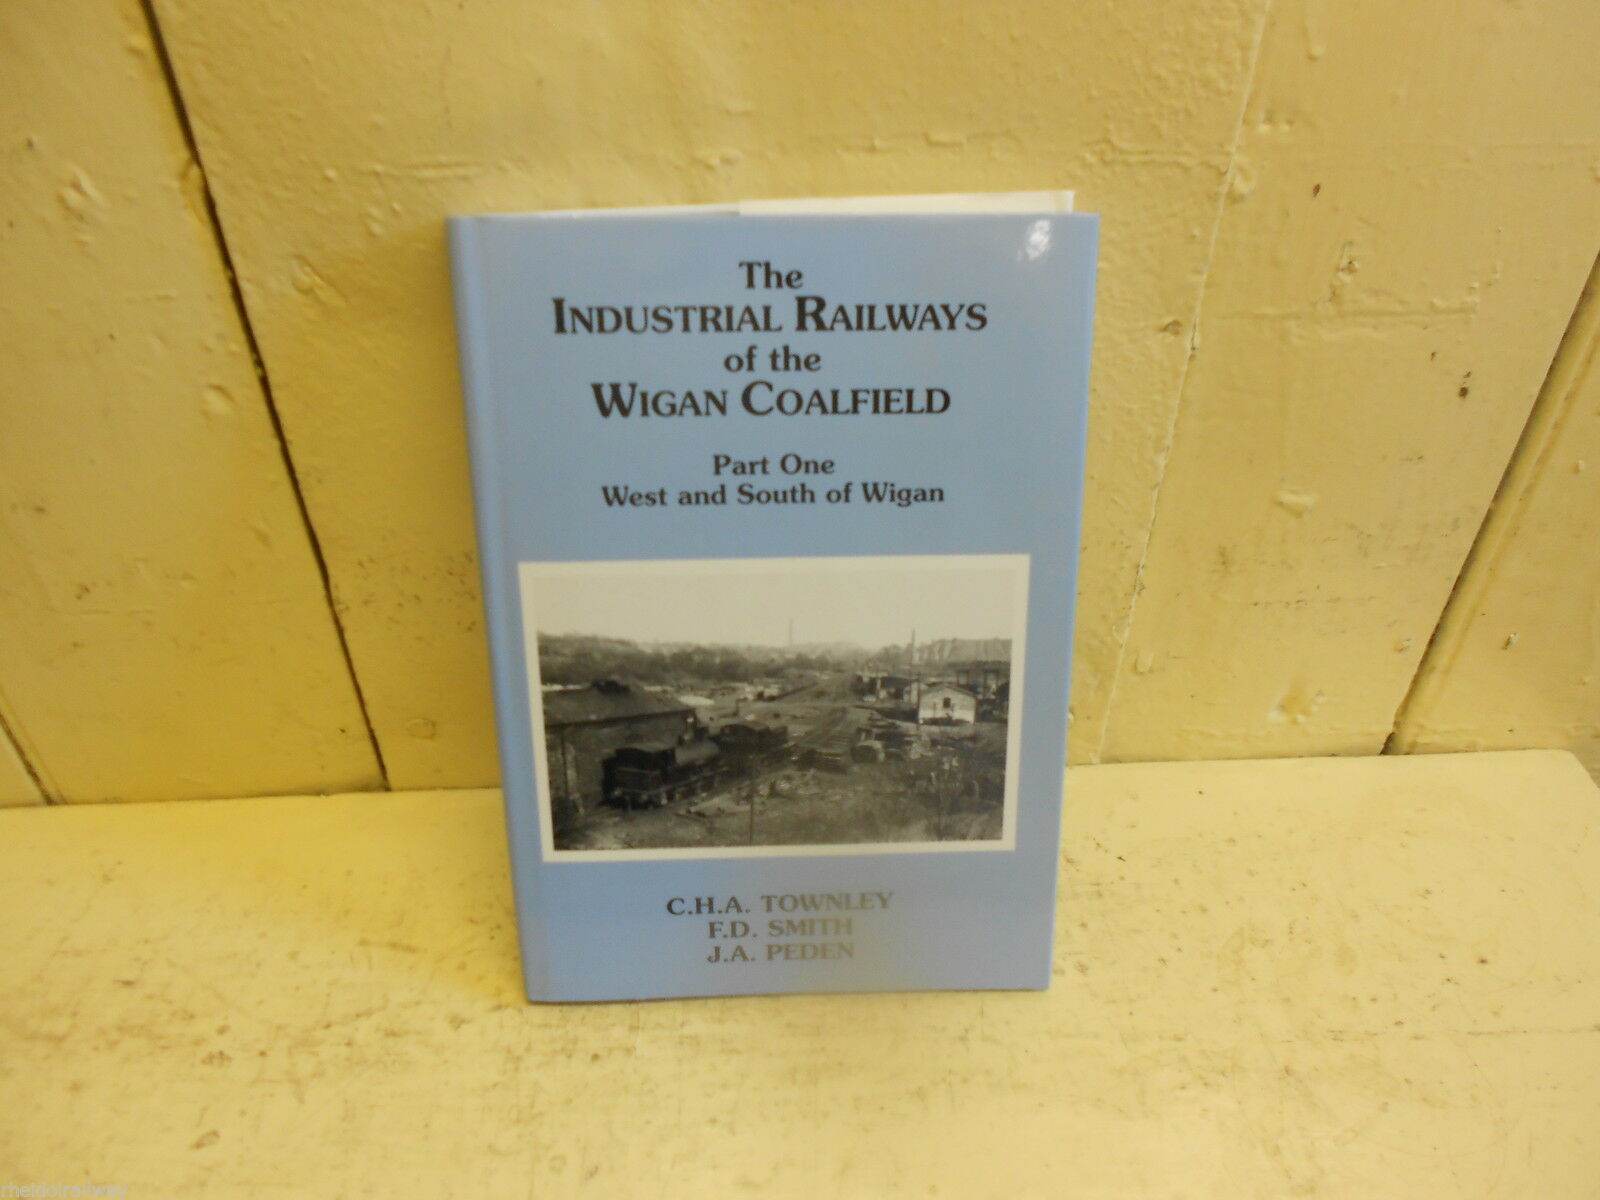 Wigan Coalfield - The Industrial Railways Pt. 1 by J.A. Peden, - The Vale of Rheidol Railway